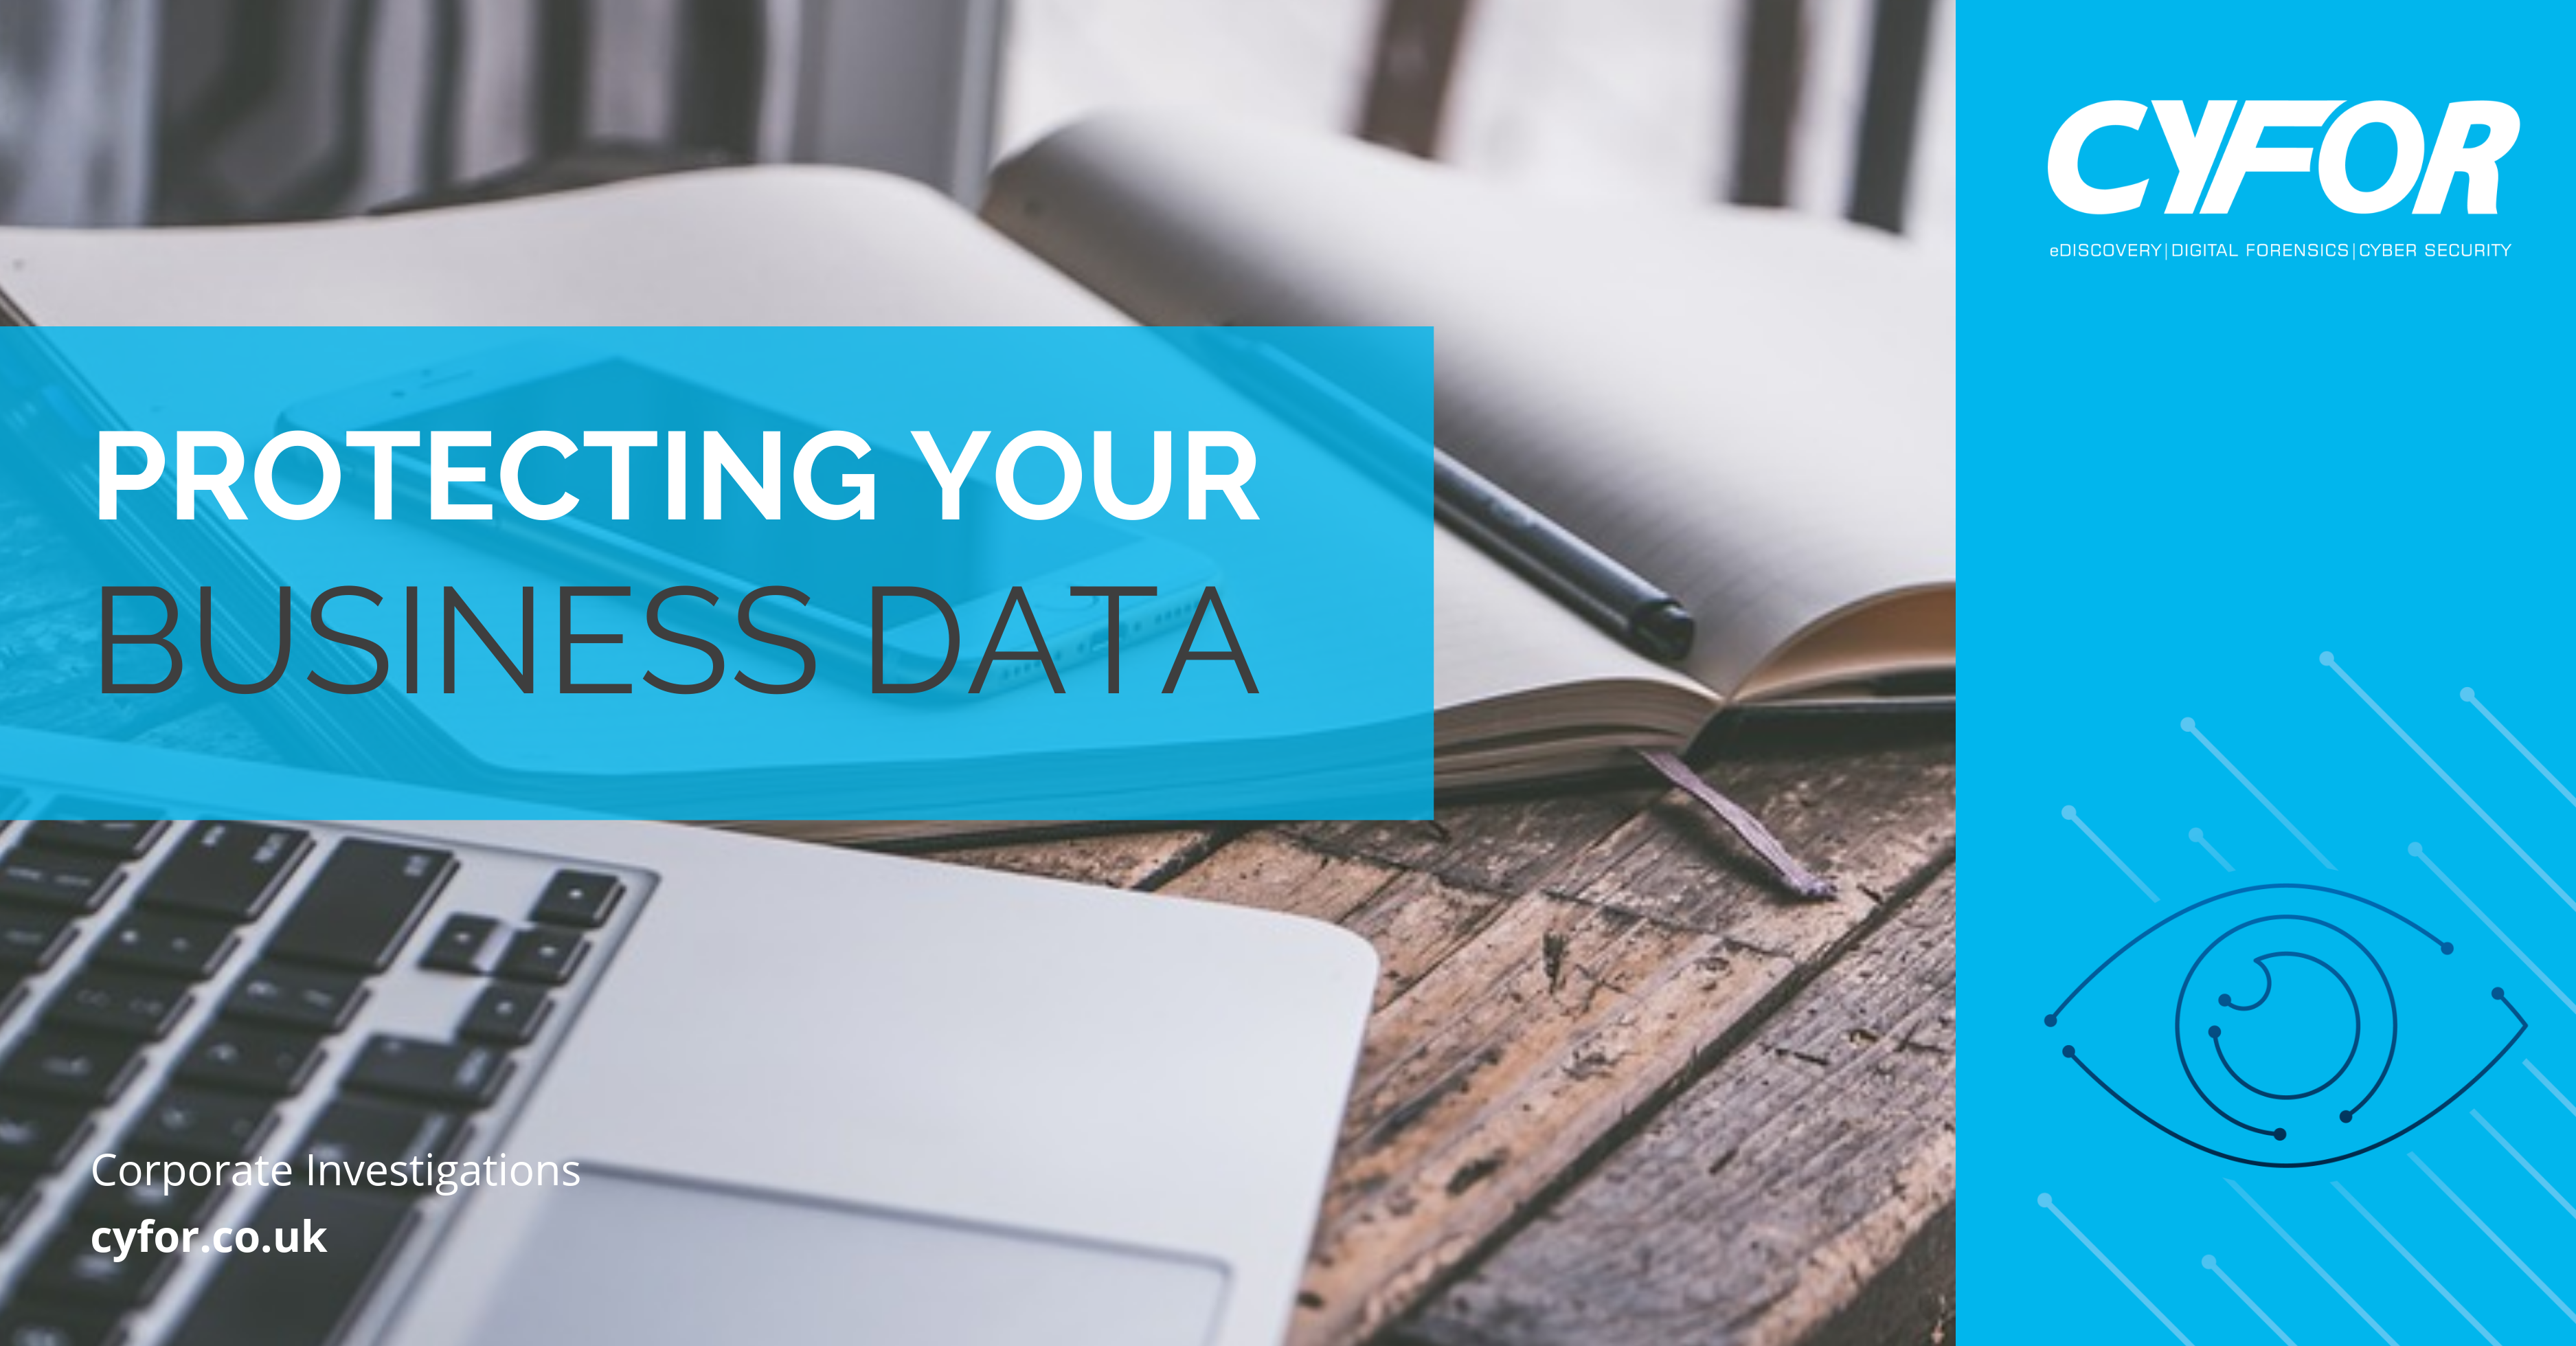 Protecting your business data